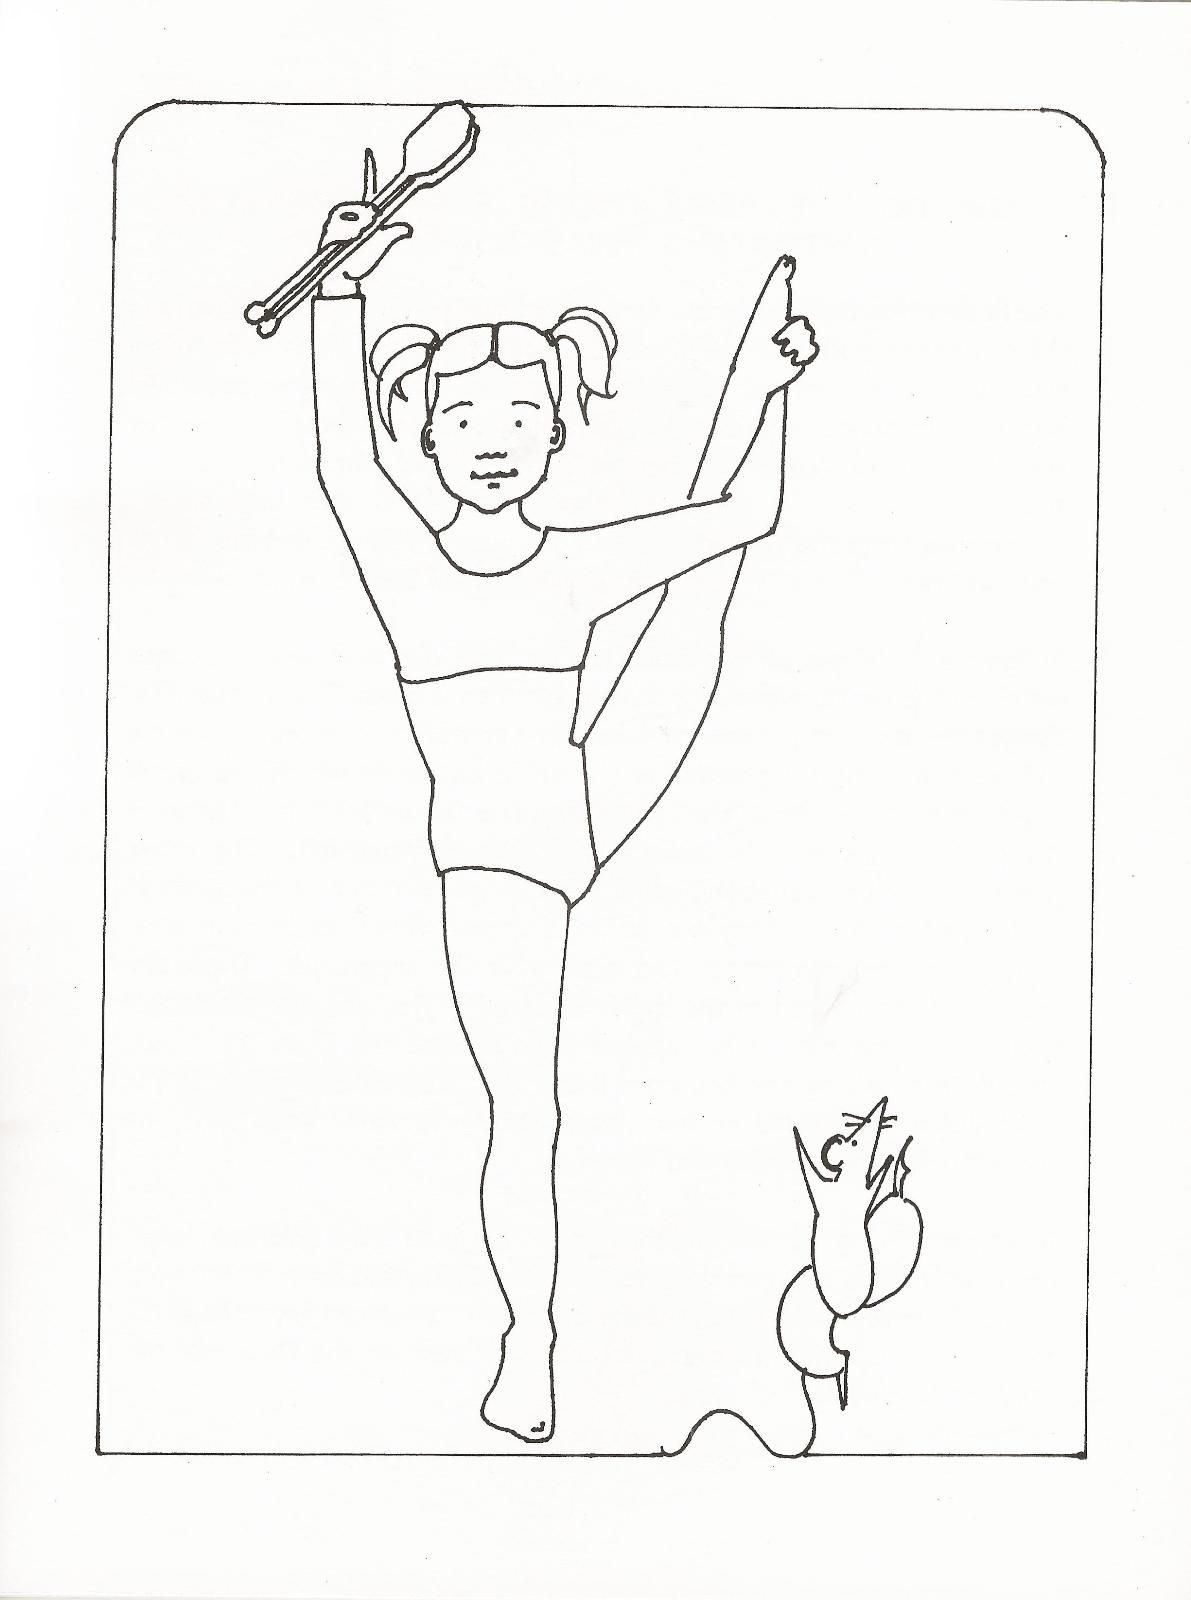 Printable gymnastics coloring pages coloring home for Gymnastic coloring pages